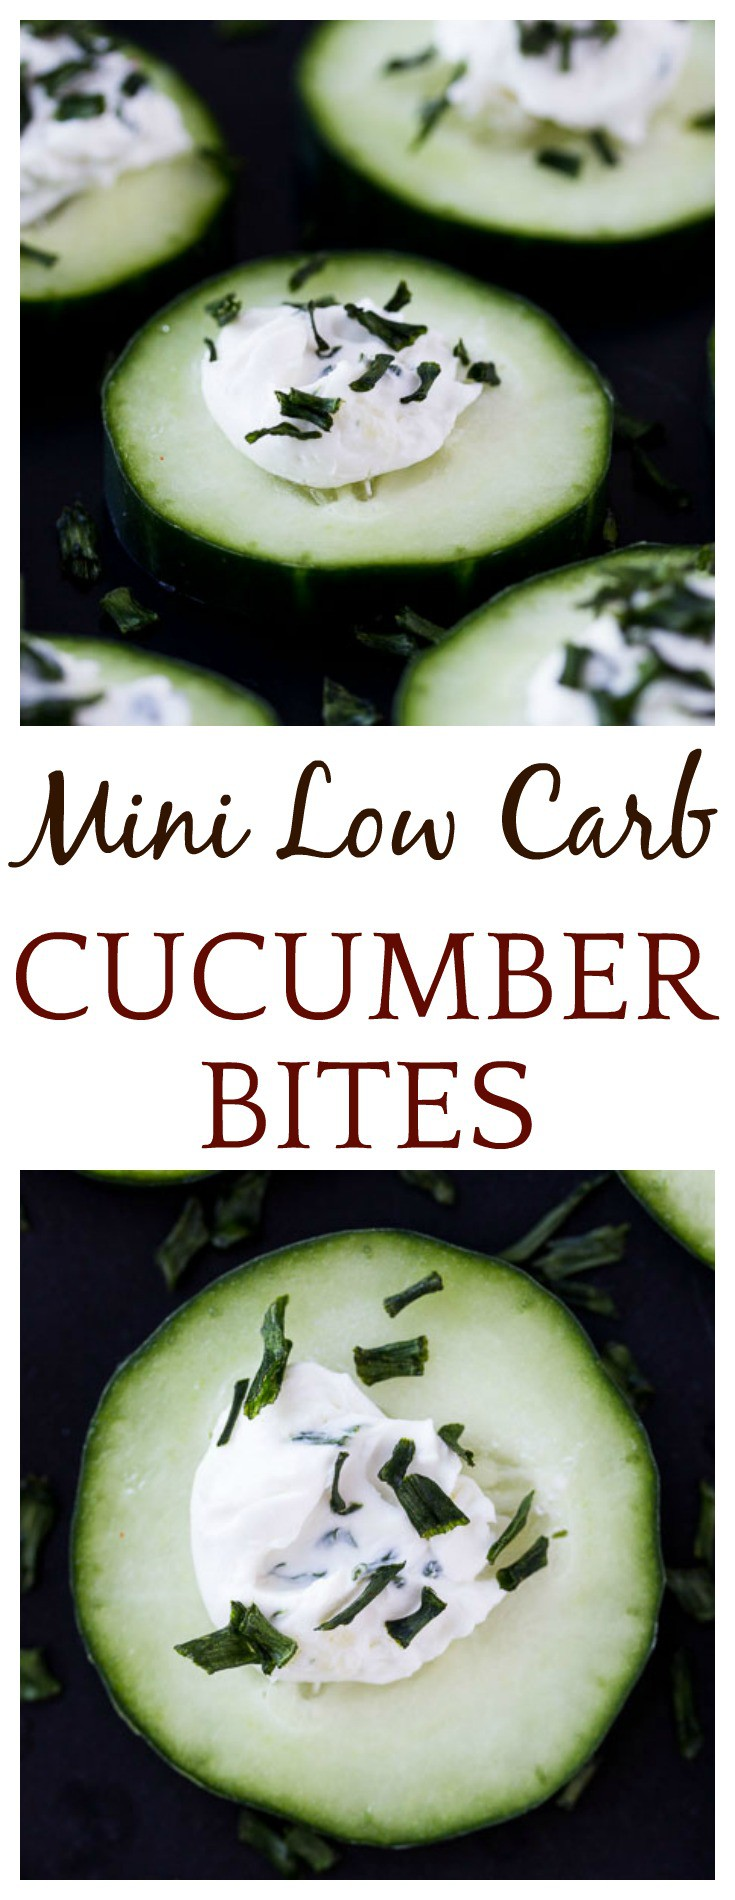 These Mini Low Carb Cucumber Bites are an easy appetizer recipe perfect for any Spring gathering! They are naturally gluten free as well! | #lowcarb #lowcarbappetizer #glutenfree #glutenfreeappetizer #dlbrecipes | appetizer recipes